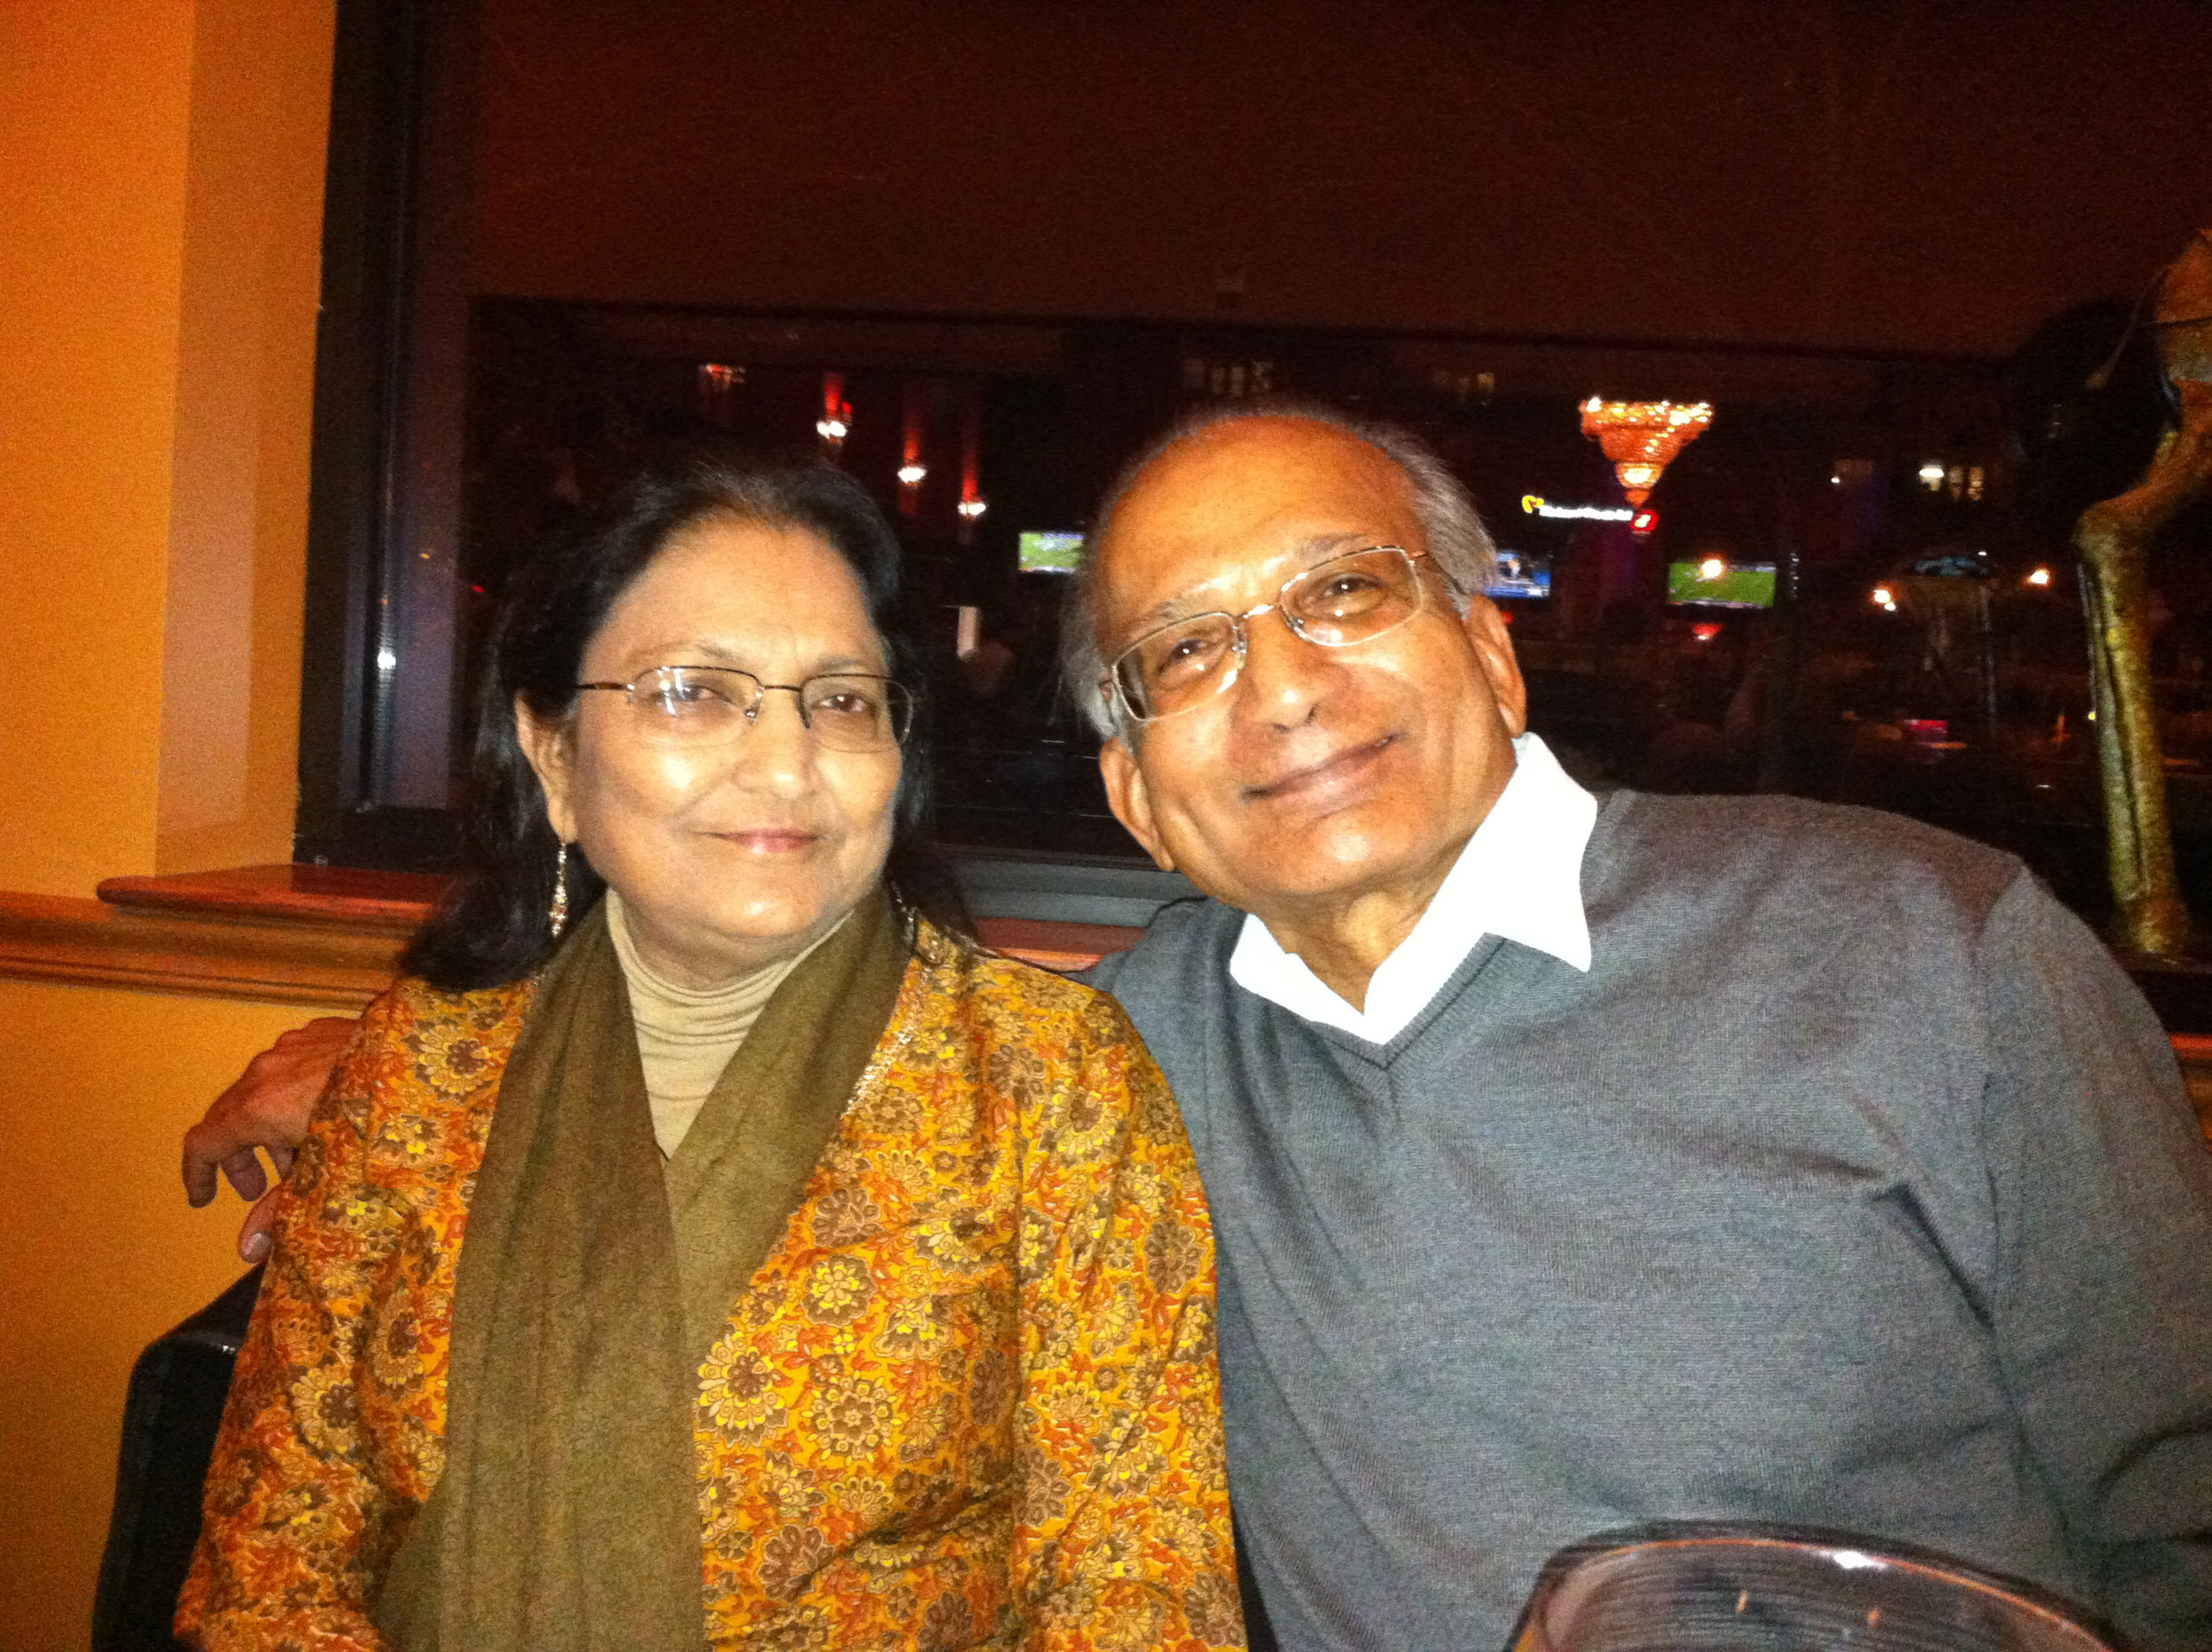 Ram and Neena Gada  (Photo is provided as a courtesy to The $8 Man and is the property of Ram and Neena Gada)